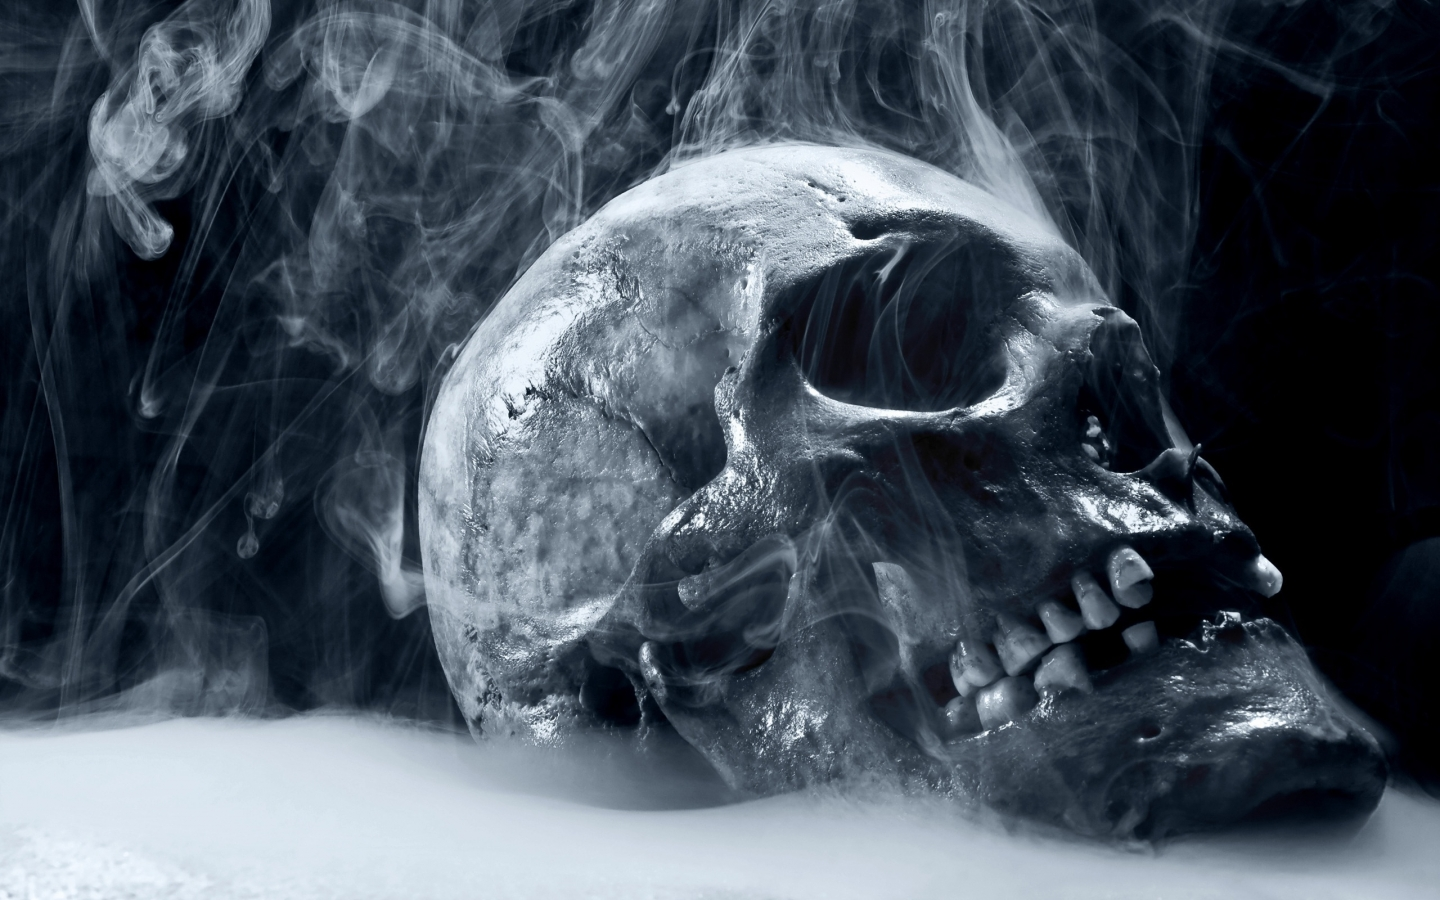 Skull Smoking for 1440 x 900 widescreen resolution